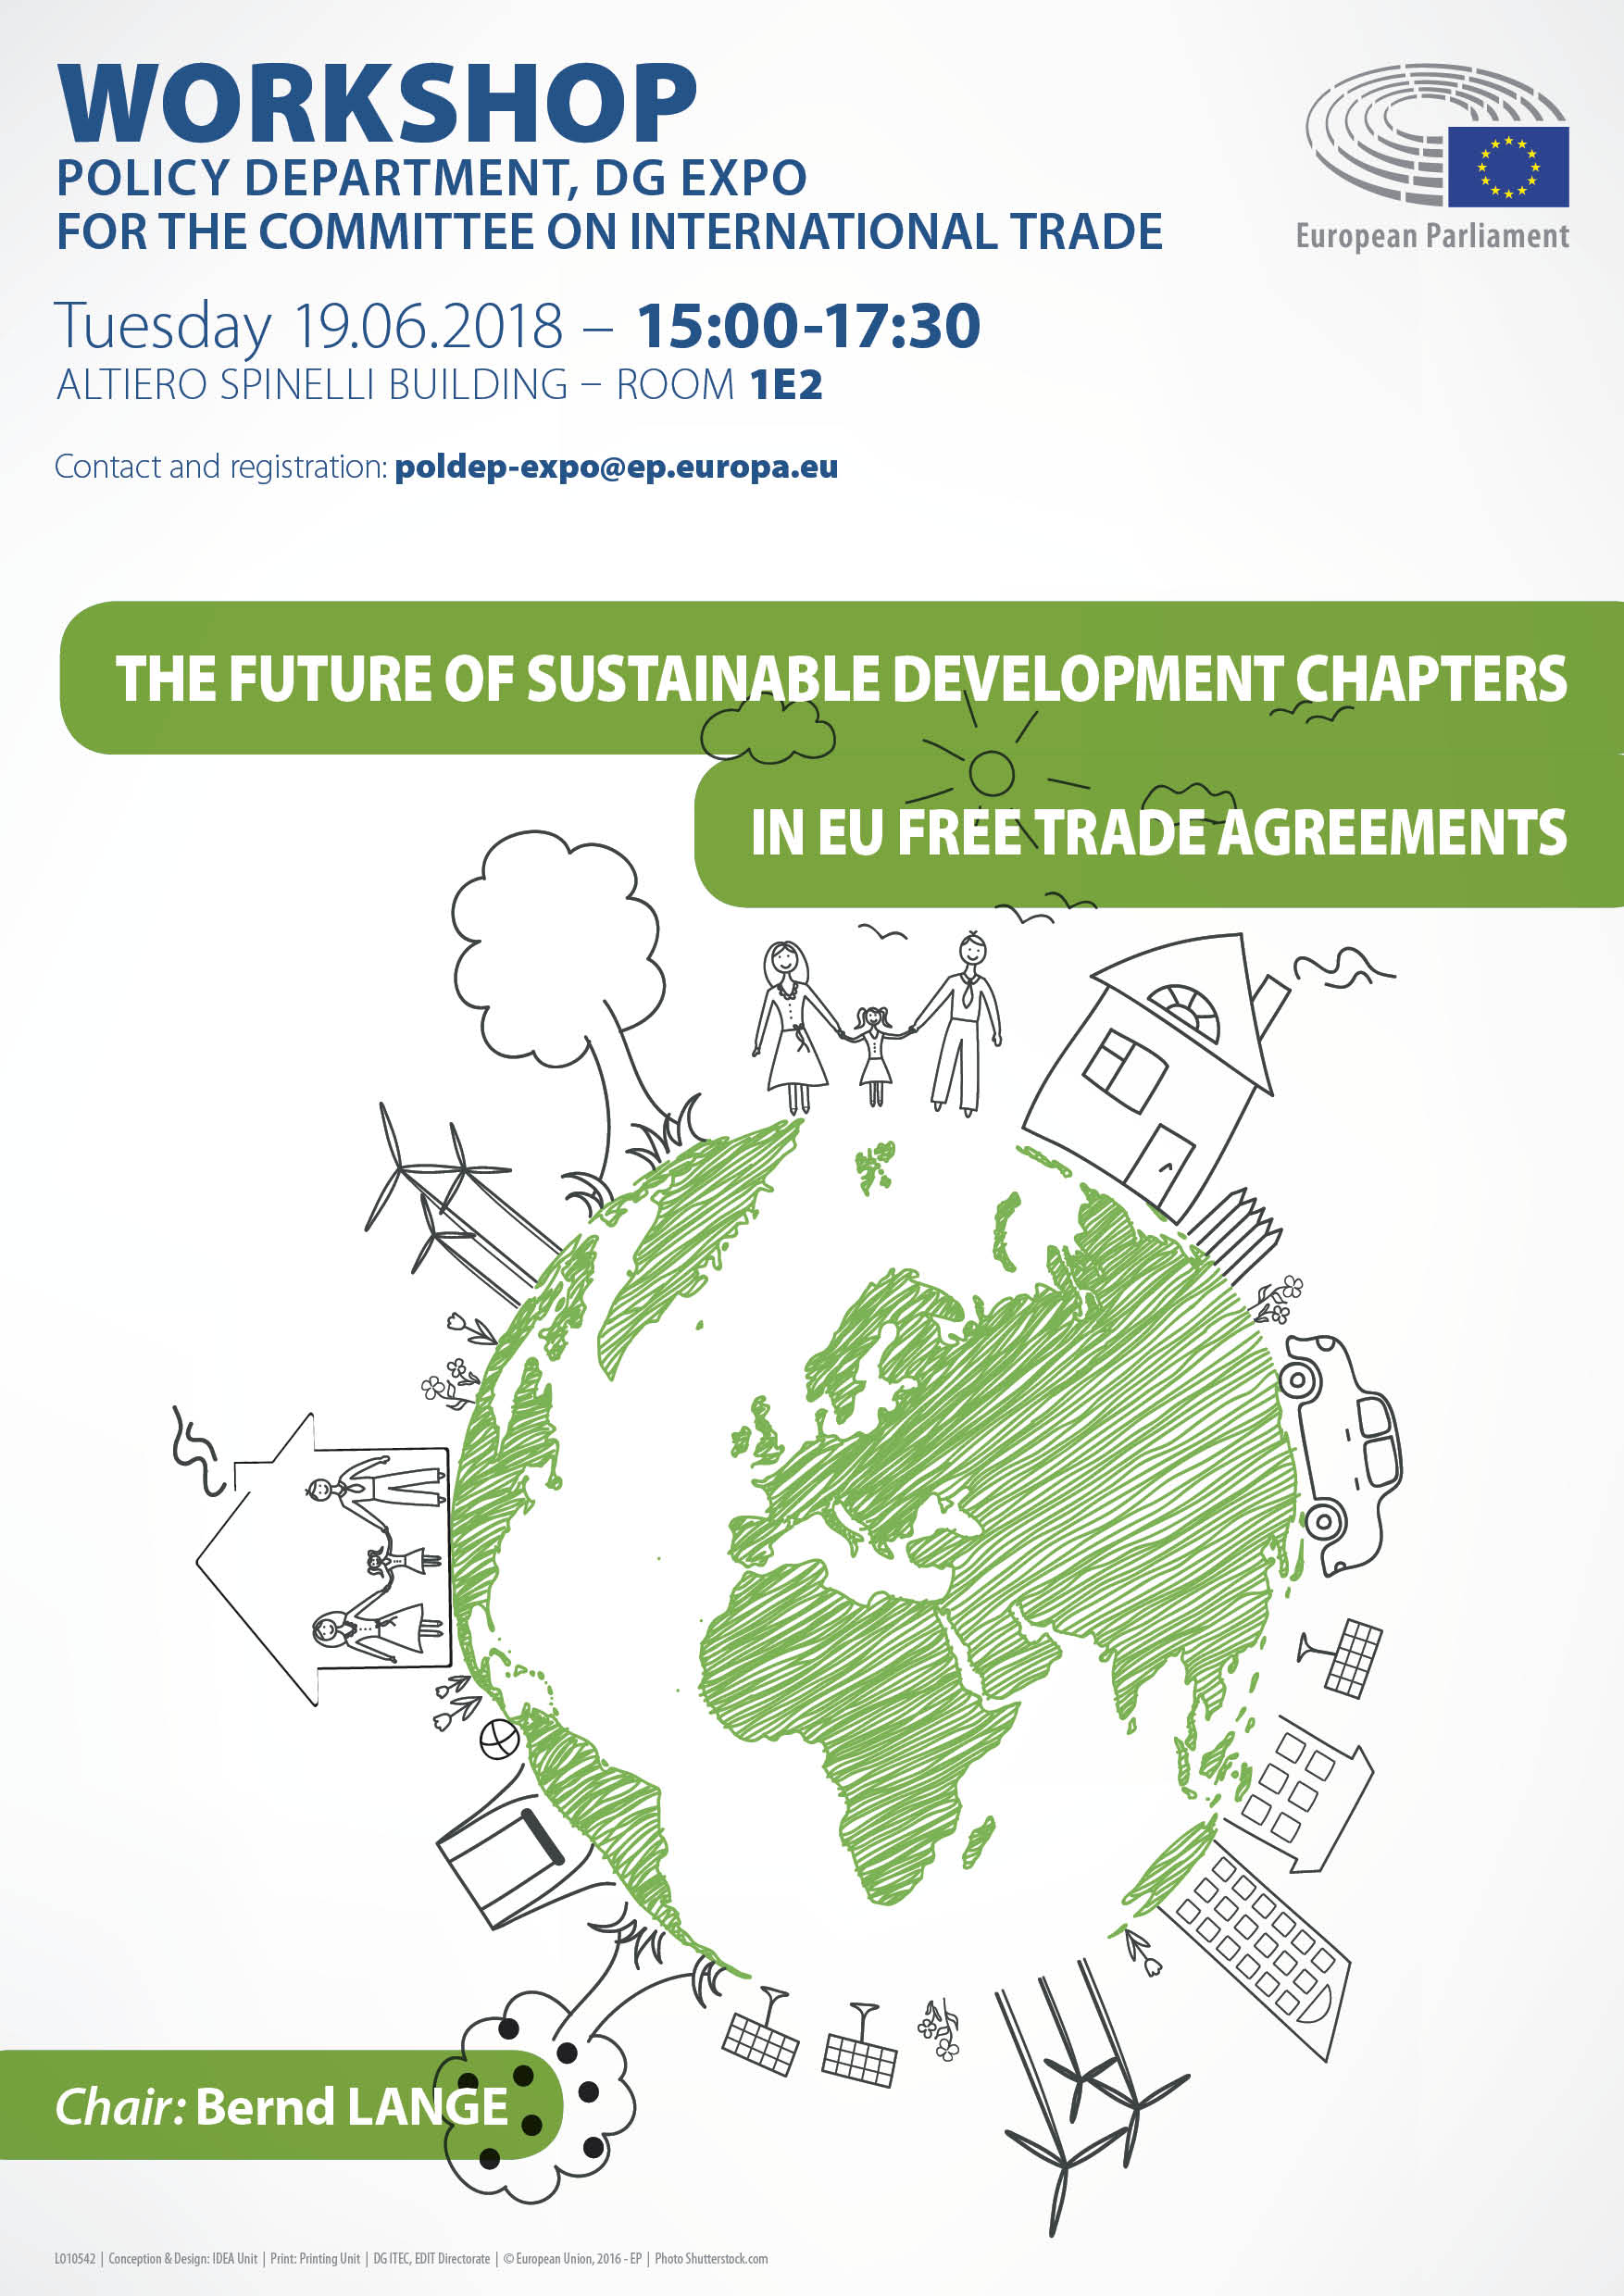 Poster_The%20future%20of%20sustainable%20development%20chapters.jpg